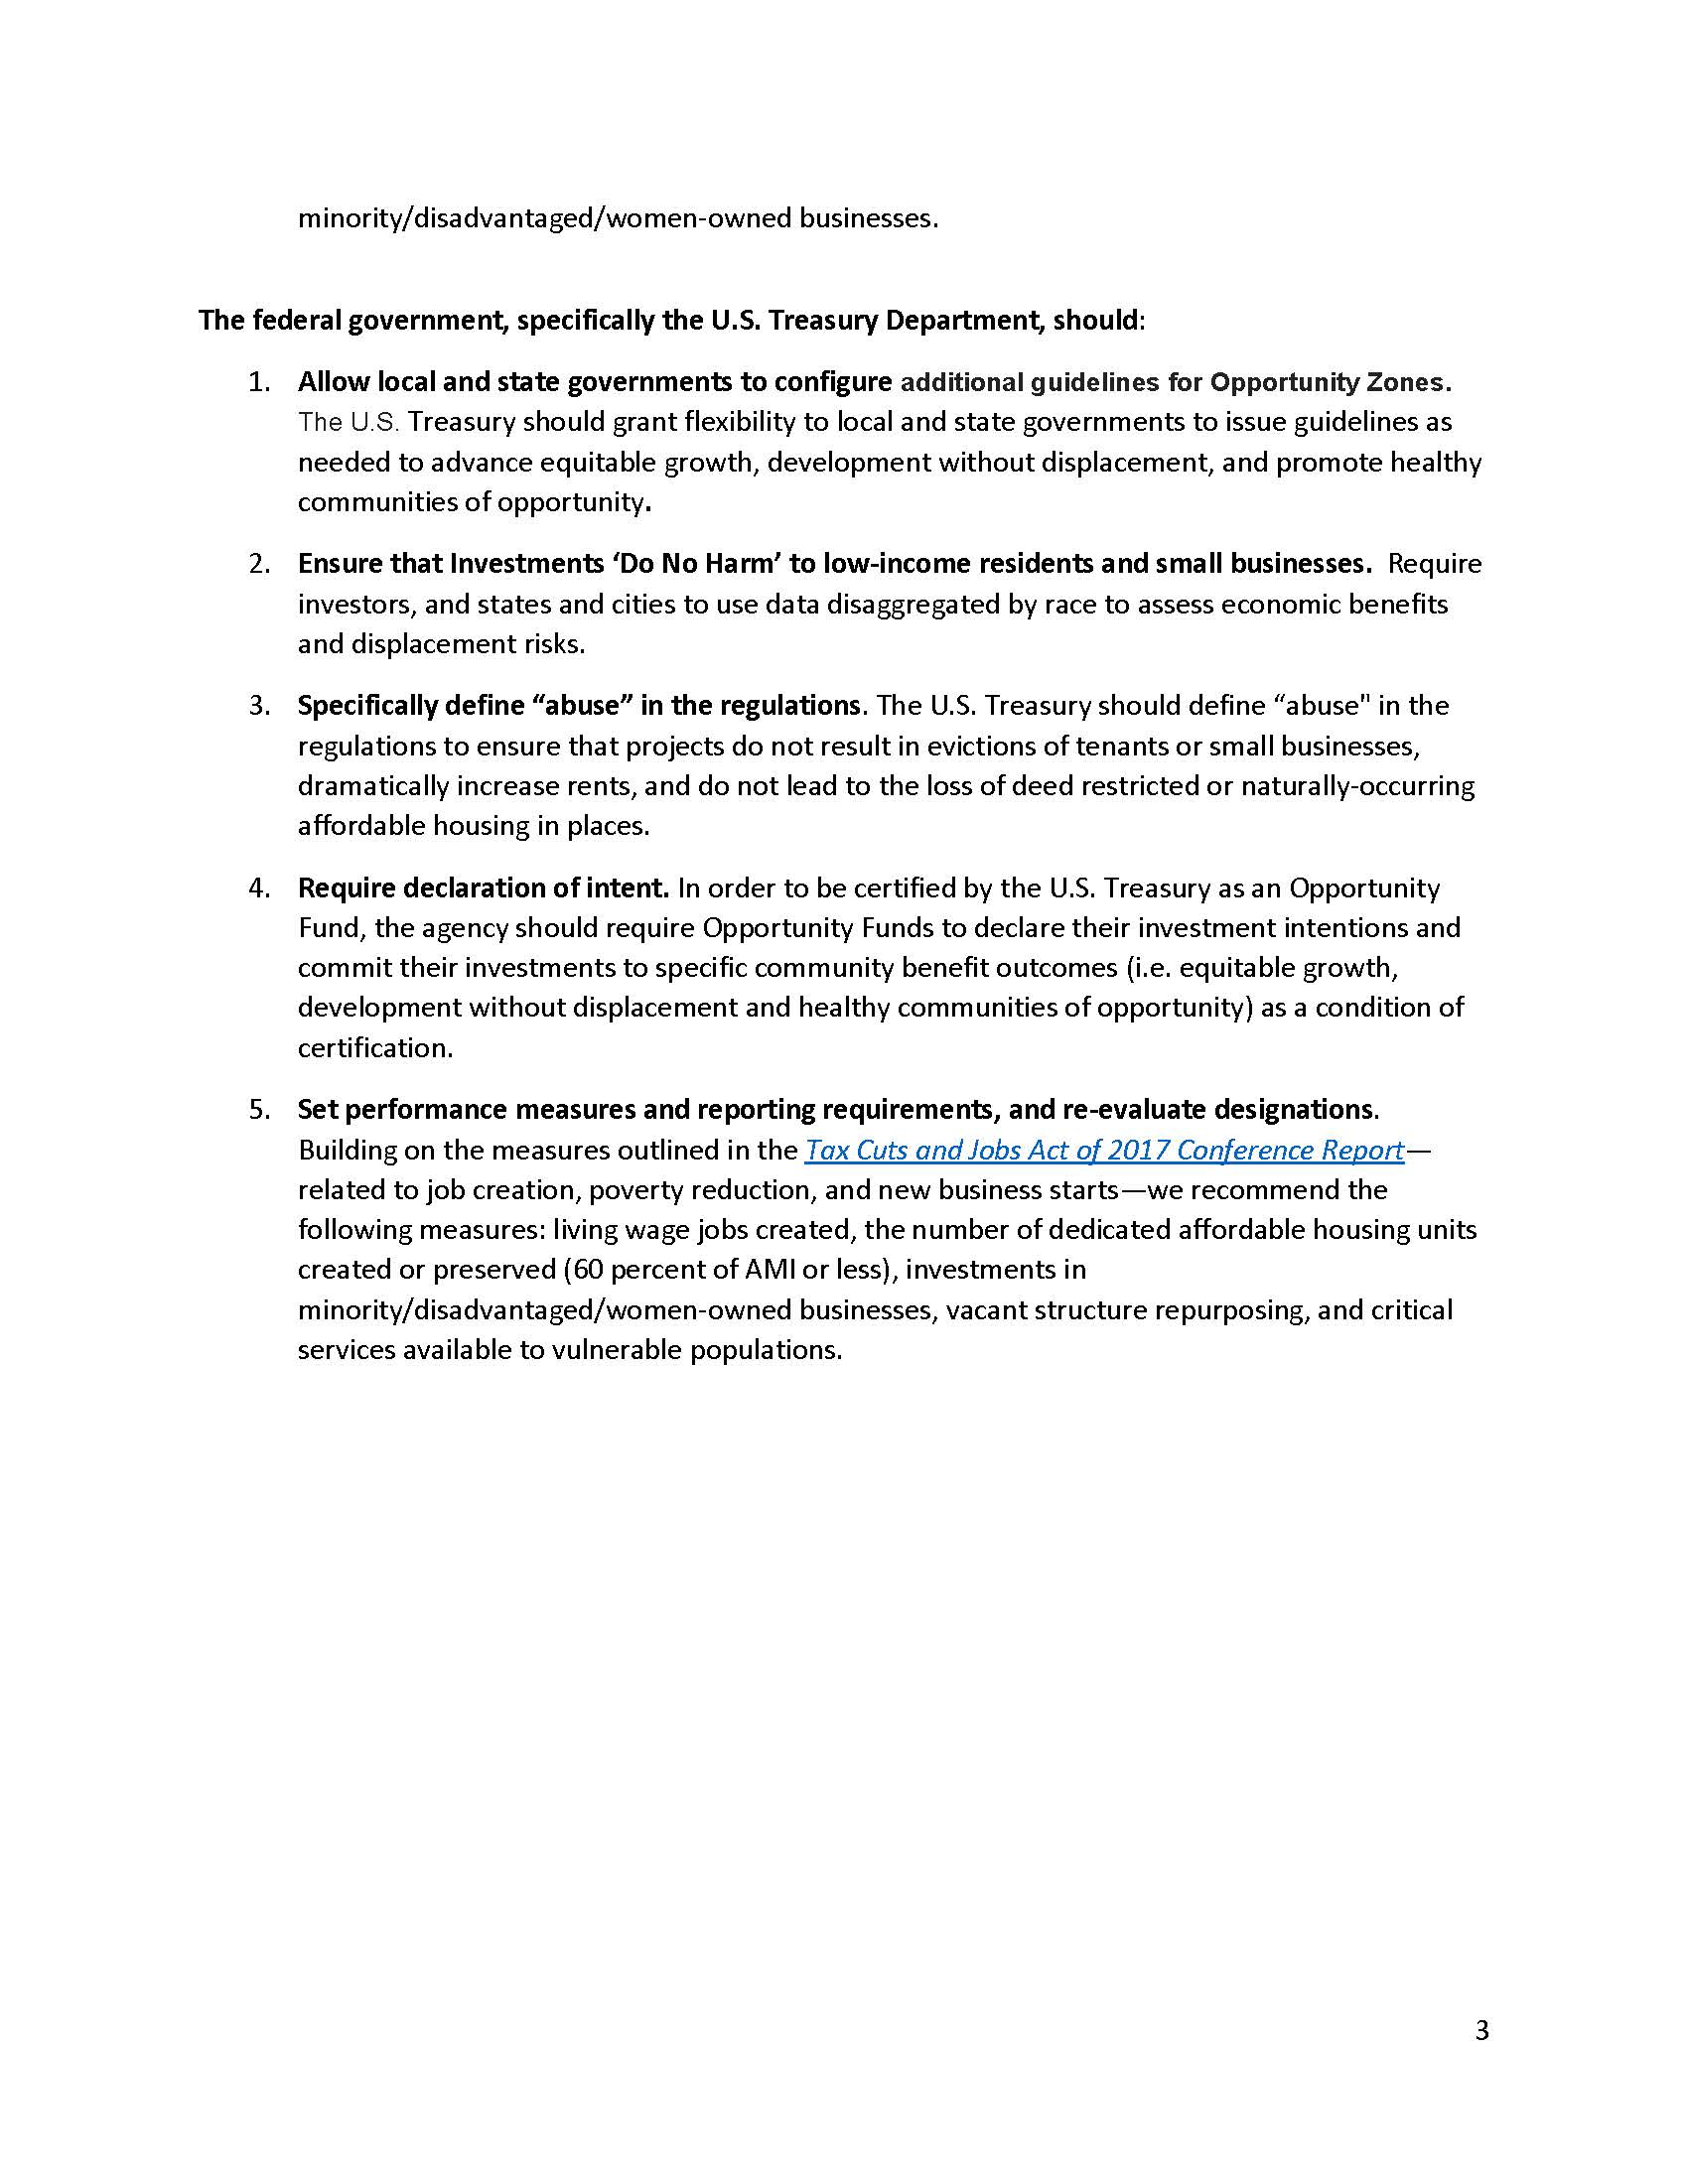 PolicyLink Recommendations for Opportunity Zones _Page_3.jpg